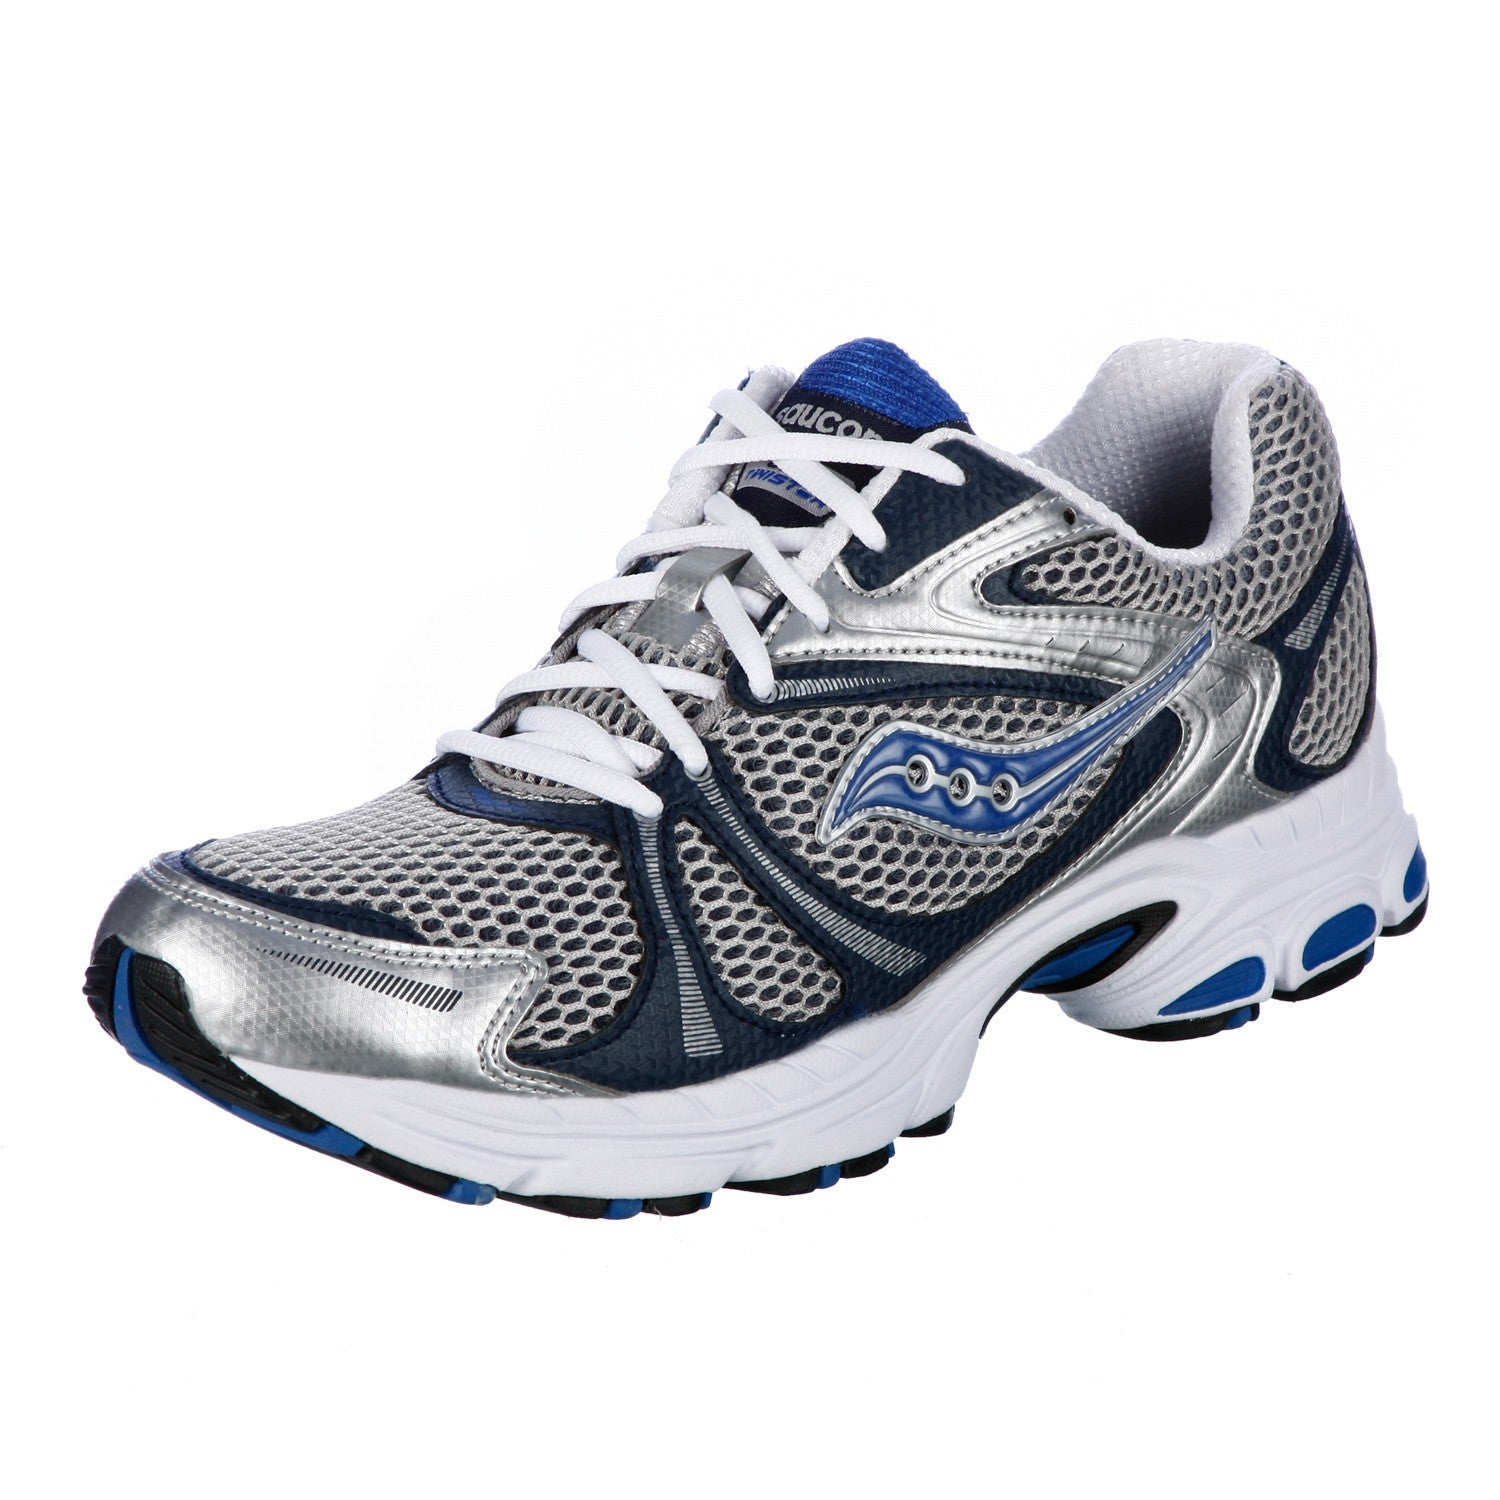 Saucony womens running shoes reviews Clothing stores